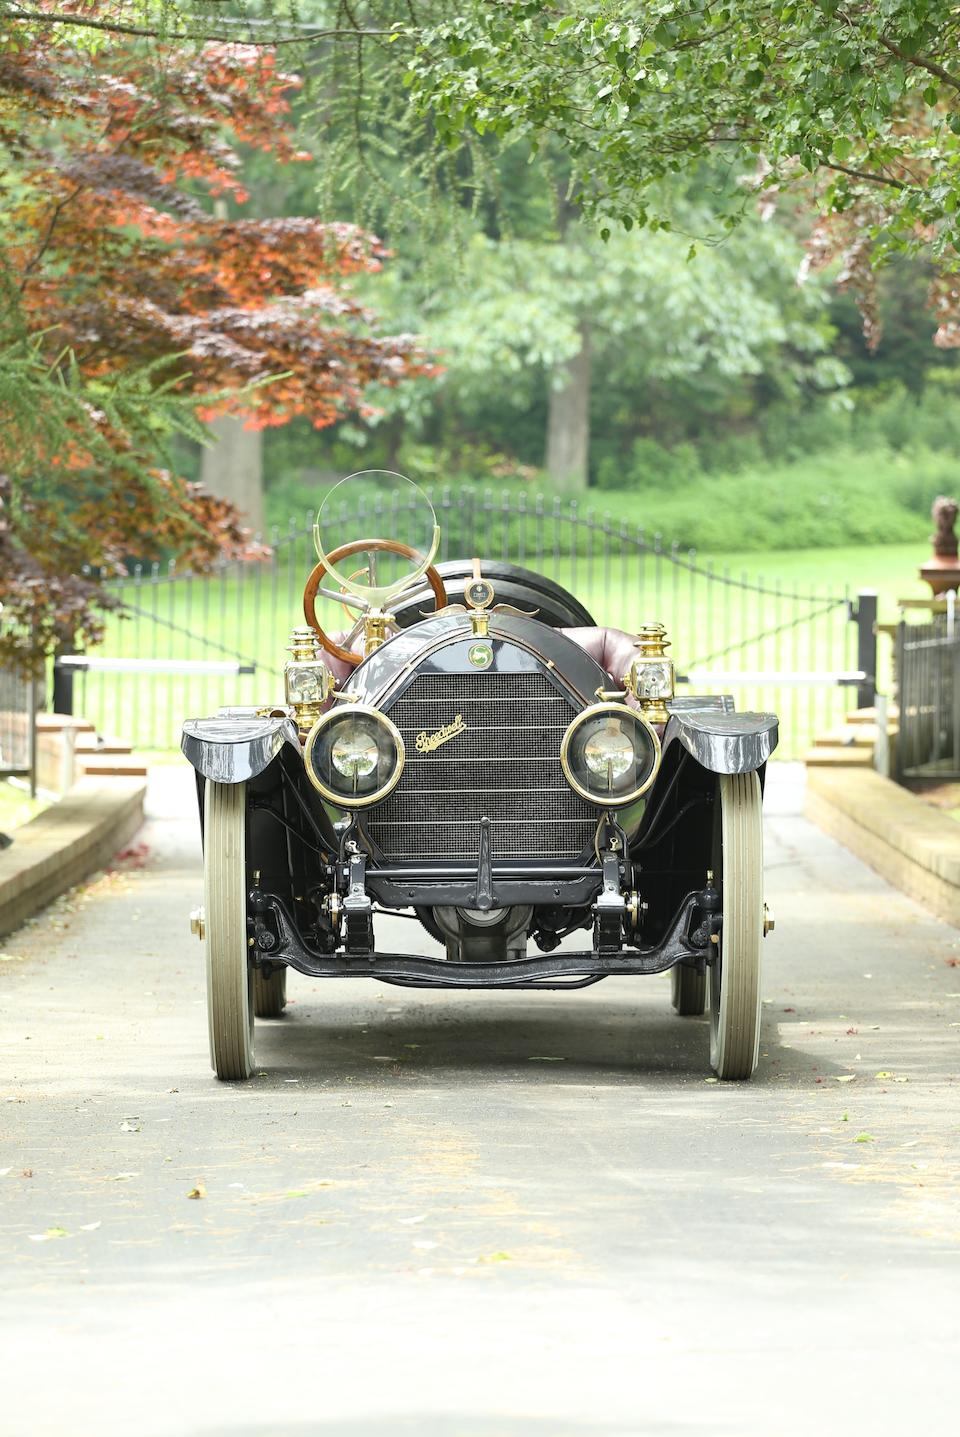 <b>1912 SPEEDWELL 12-J 50HP SPEED CAR  </b><br />Chassis no. 3003 <br />Engine no. L2501